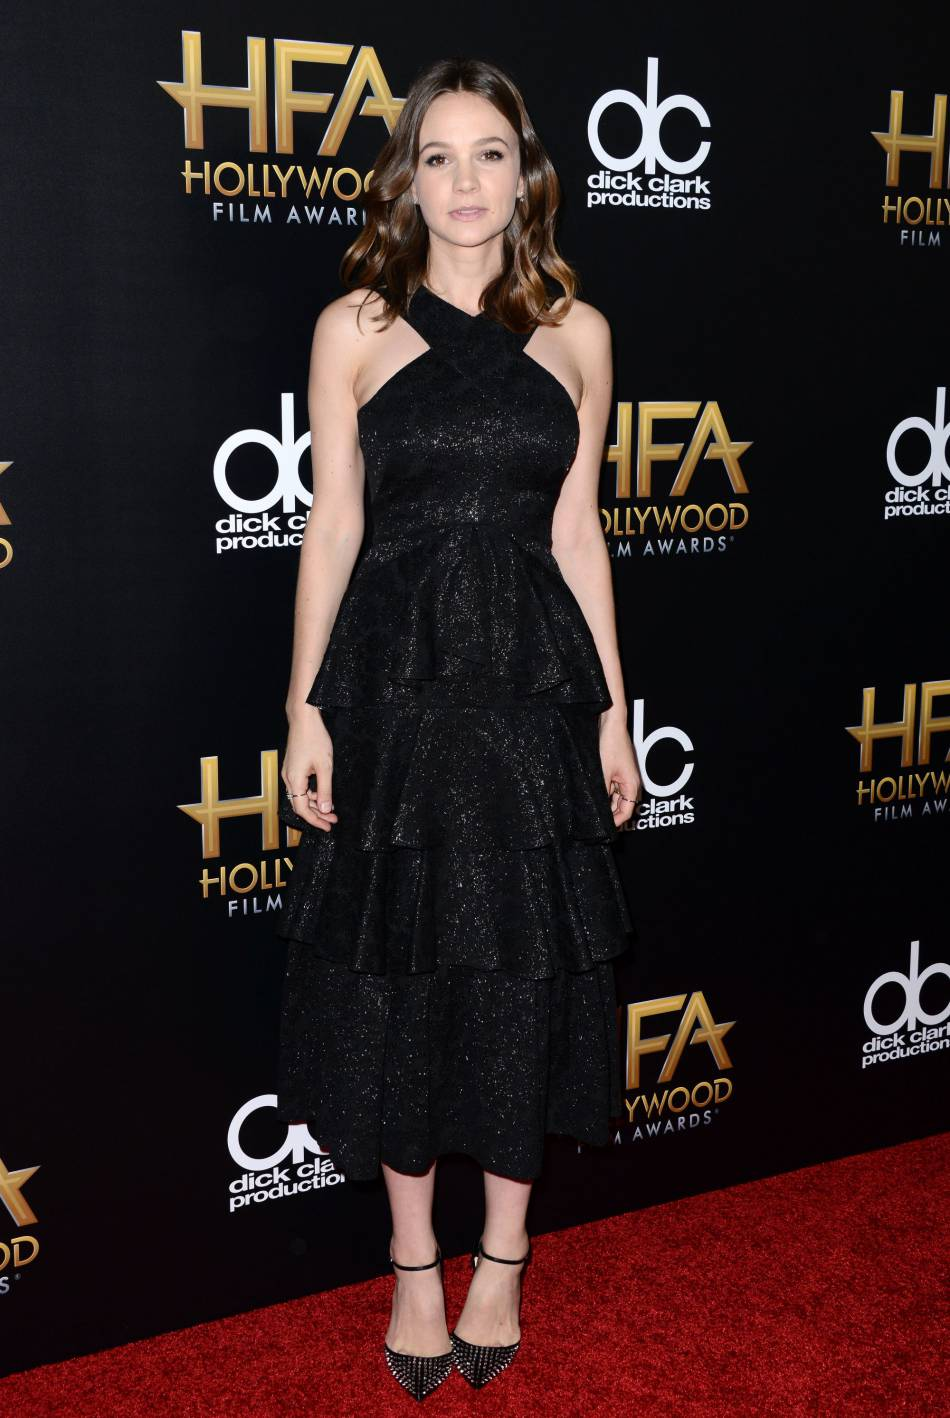 Carey Mulligan porte une robe Erdem, des bijoux Anita Ko et des chaussures Christian Louboutin sur le red carpet des Hollywood Film Awards le 1er novembre 2015 à Los Angeles.